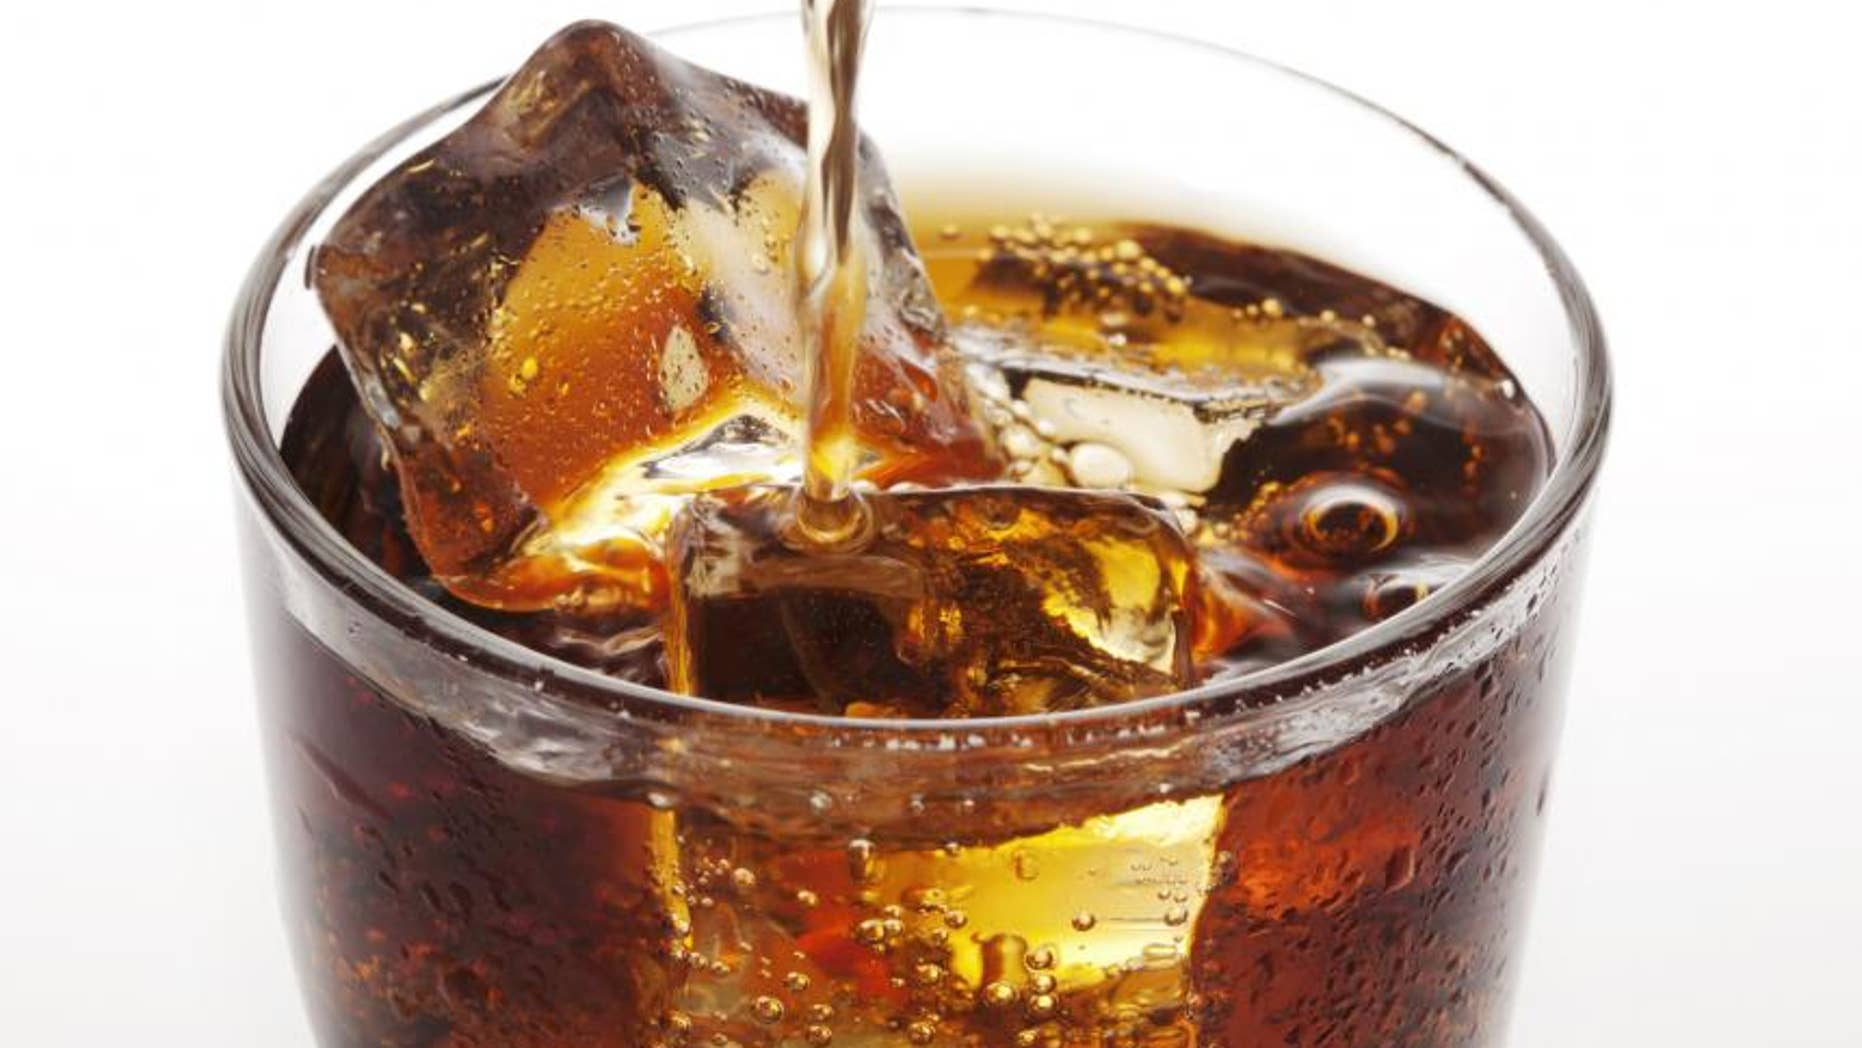 """While more studies are needed to further understand how soda triggers adult acne, Dr. Julia Tzu, clinical assistant professor of dermatology at New York University, believes fizzy cola, in particular, can wreck havoc on your features. """"Cola sodas are basically a bubbly mixture of weak acids and tons of sugar,"""" she explains. """"Not only is it terrible for the skin because of the high fructose corn syrup, it is equally bad for the teeth and bones. That's pretty much the entire body."""" Skip the soda and opt for refreshing, zero-calorie water instead"""